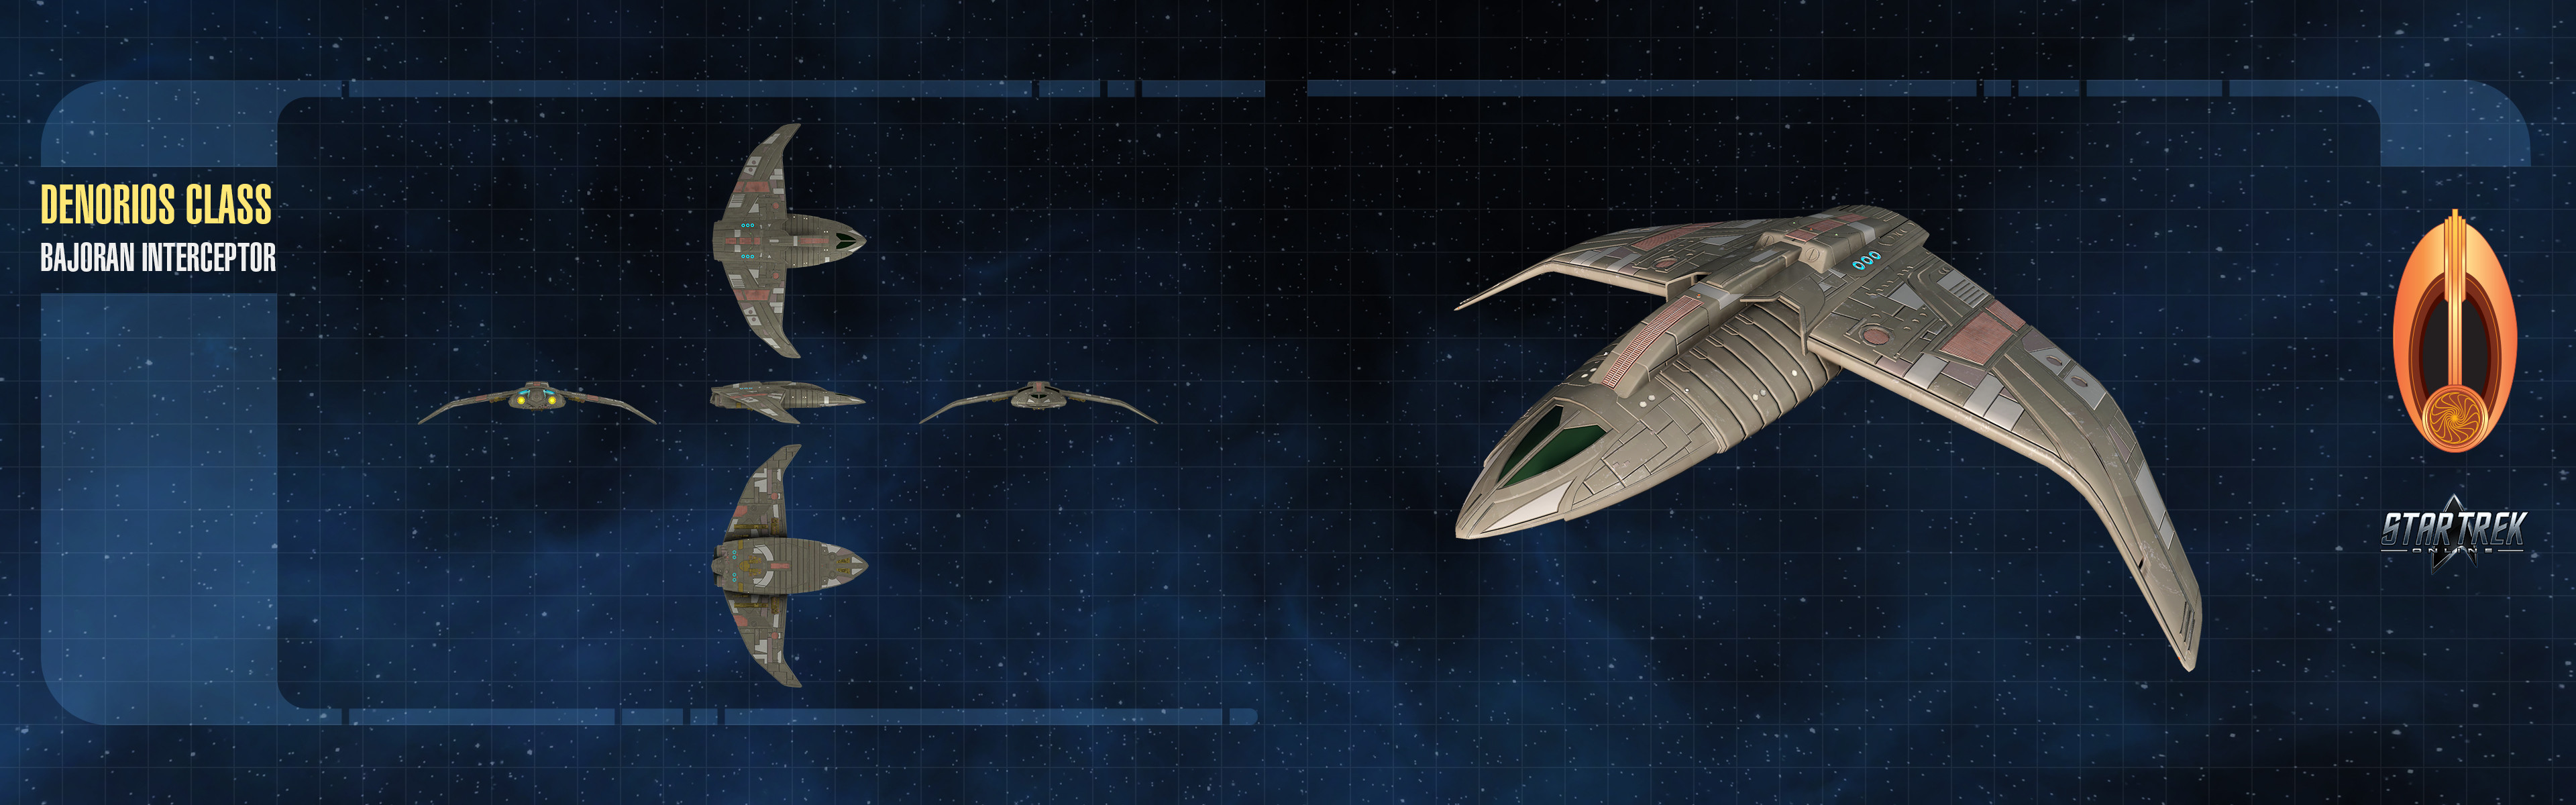 Dual-monitor wallpaper featuring orthographic views of the model.